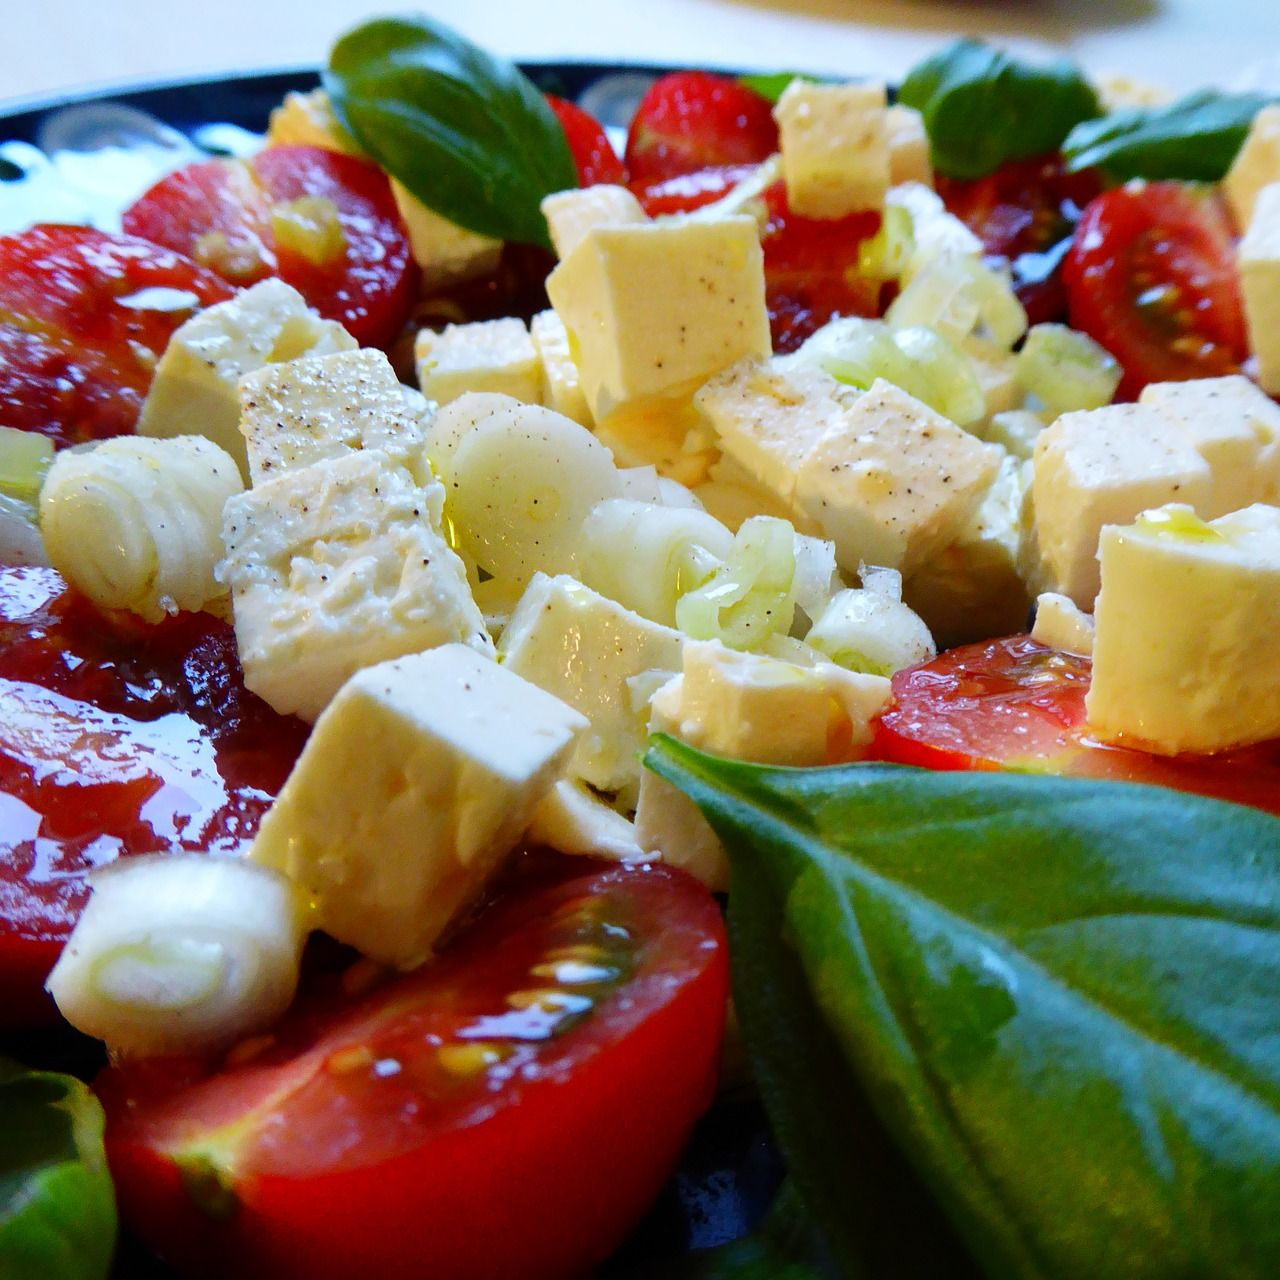 Gastronomy and specialties of Athens